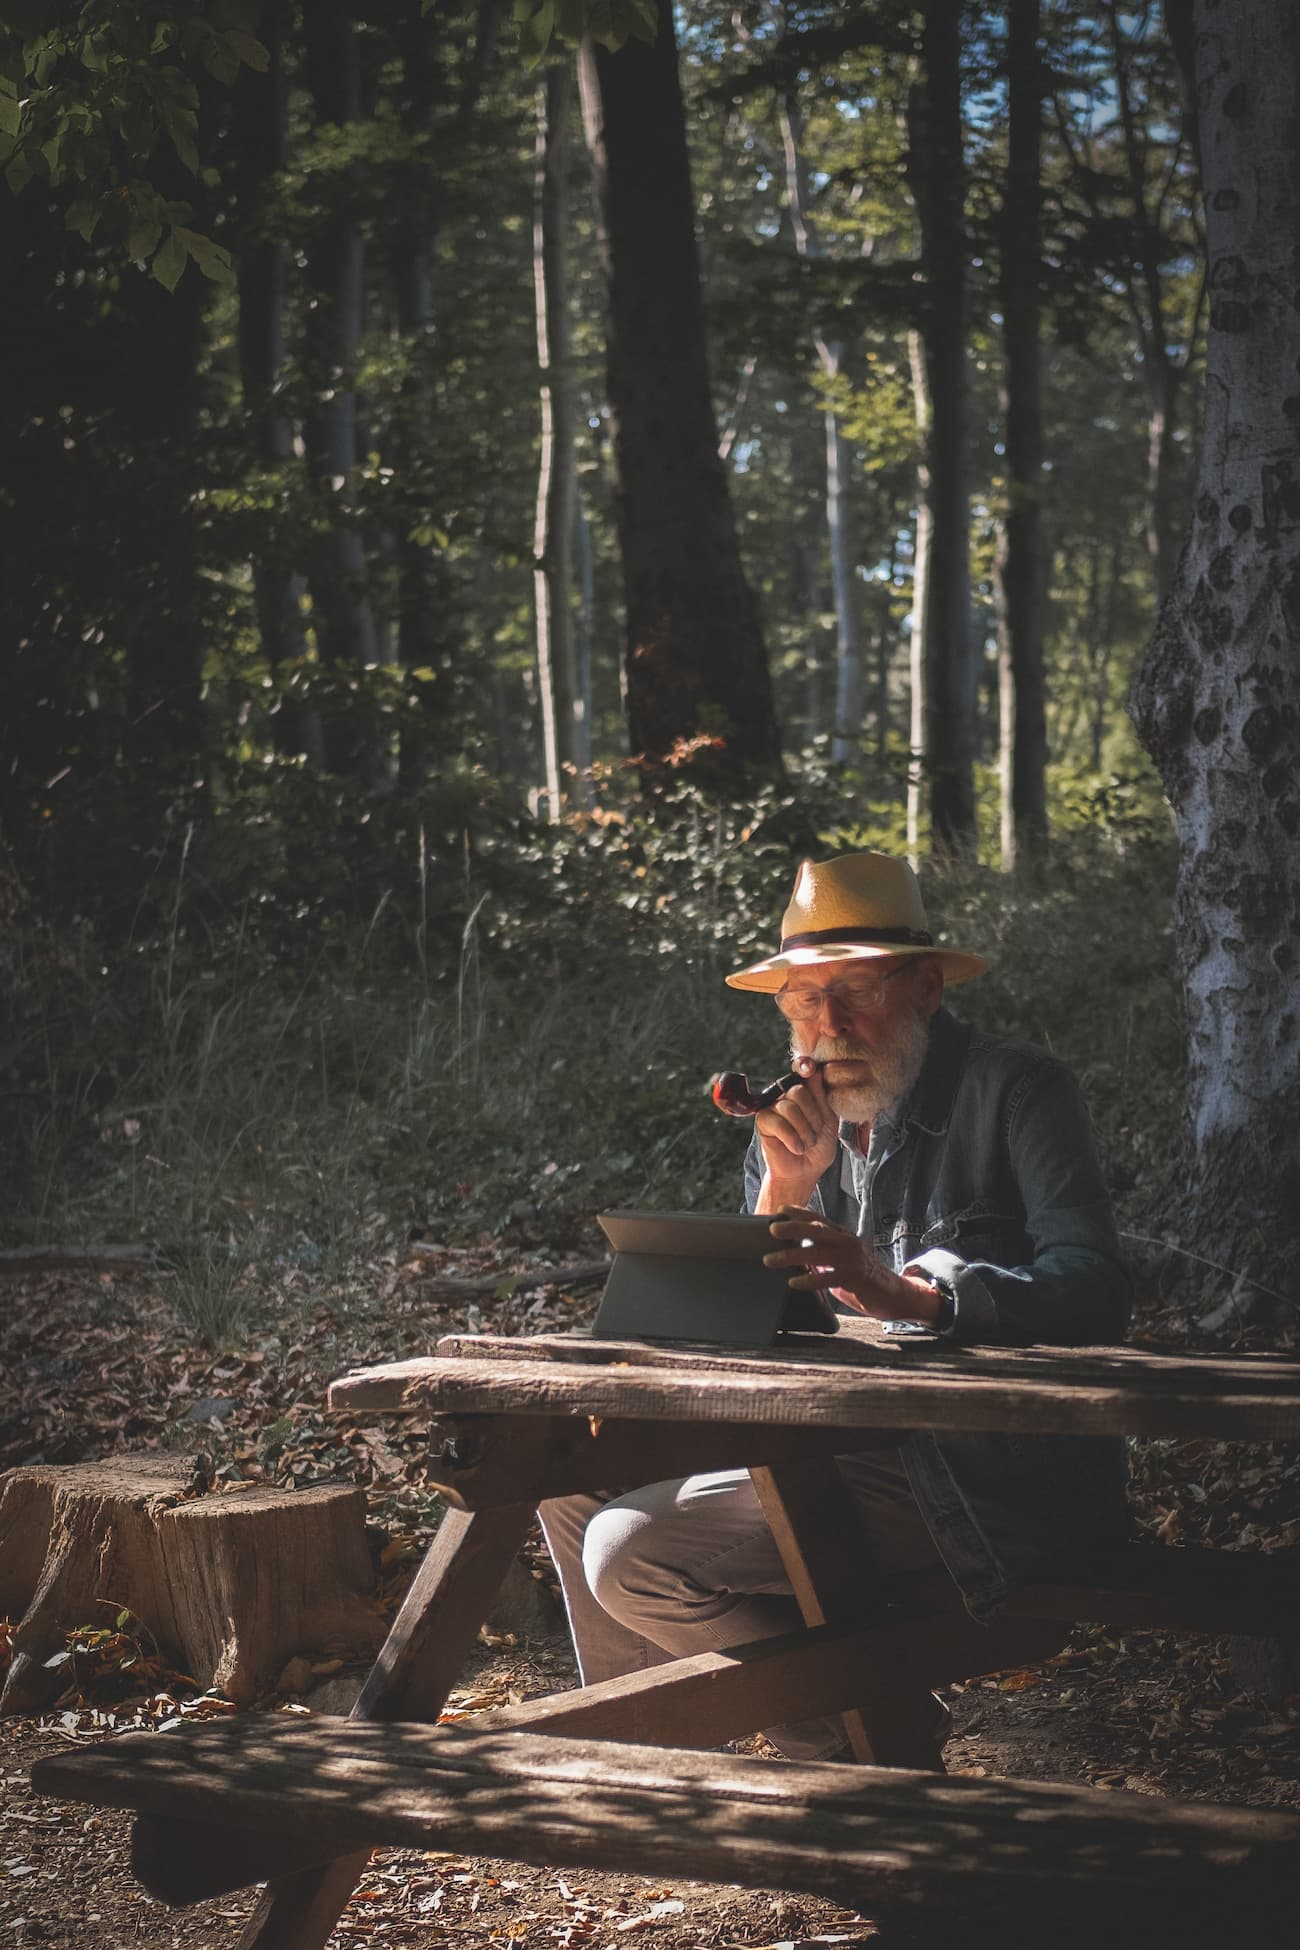 Old man with an ipad sitting in the forest